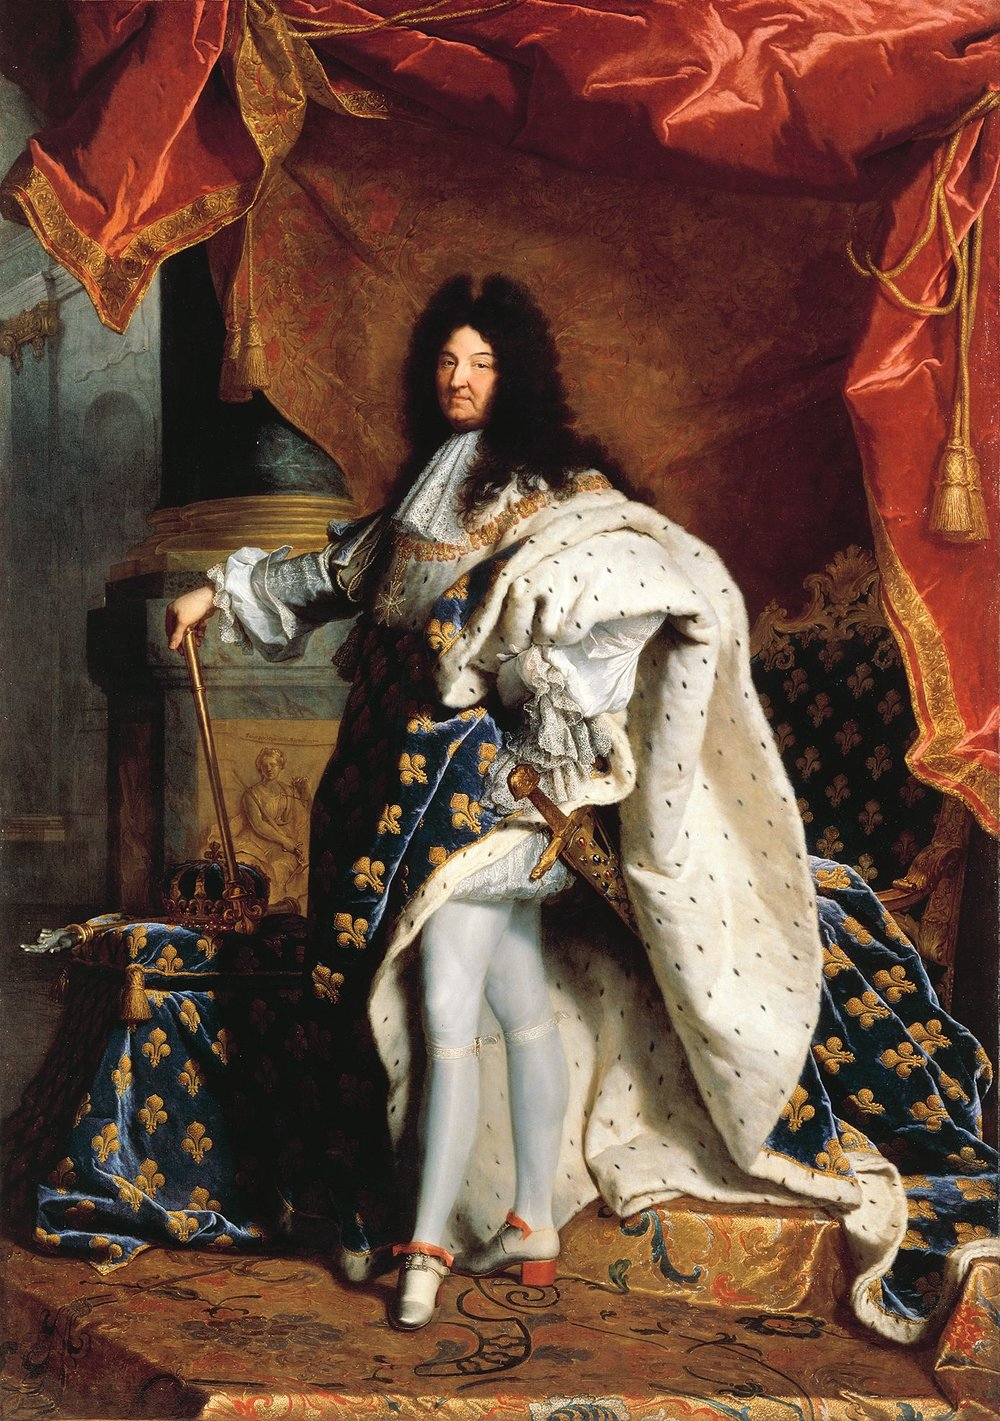 Louis XIV wearing his trademark heels in a 1701 portrait by Hyacinthe Rigaud. These tights and long flowing coats used to be considered masculine. I can only imagine how dapperQs may have dressed back then!